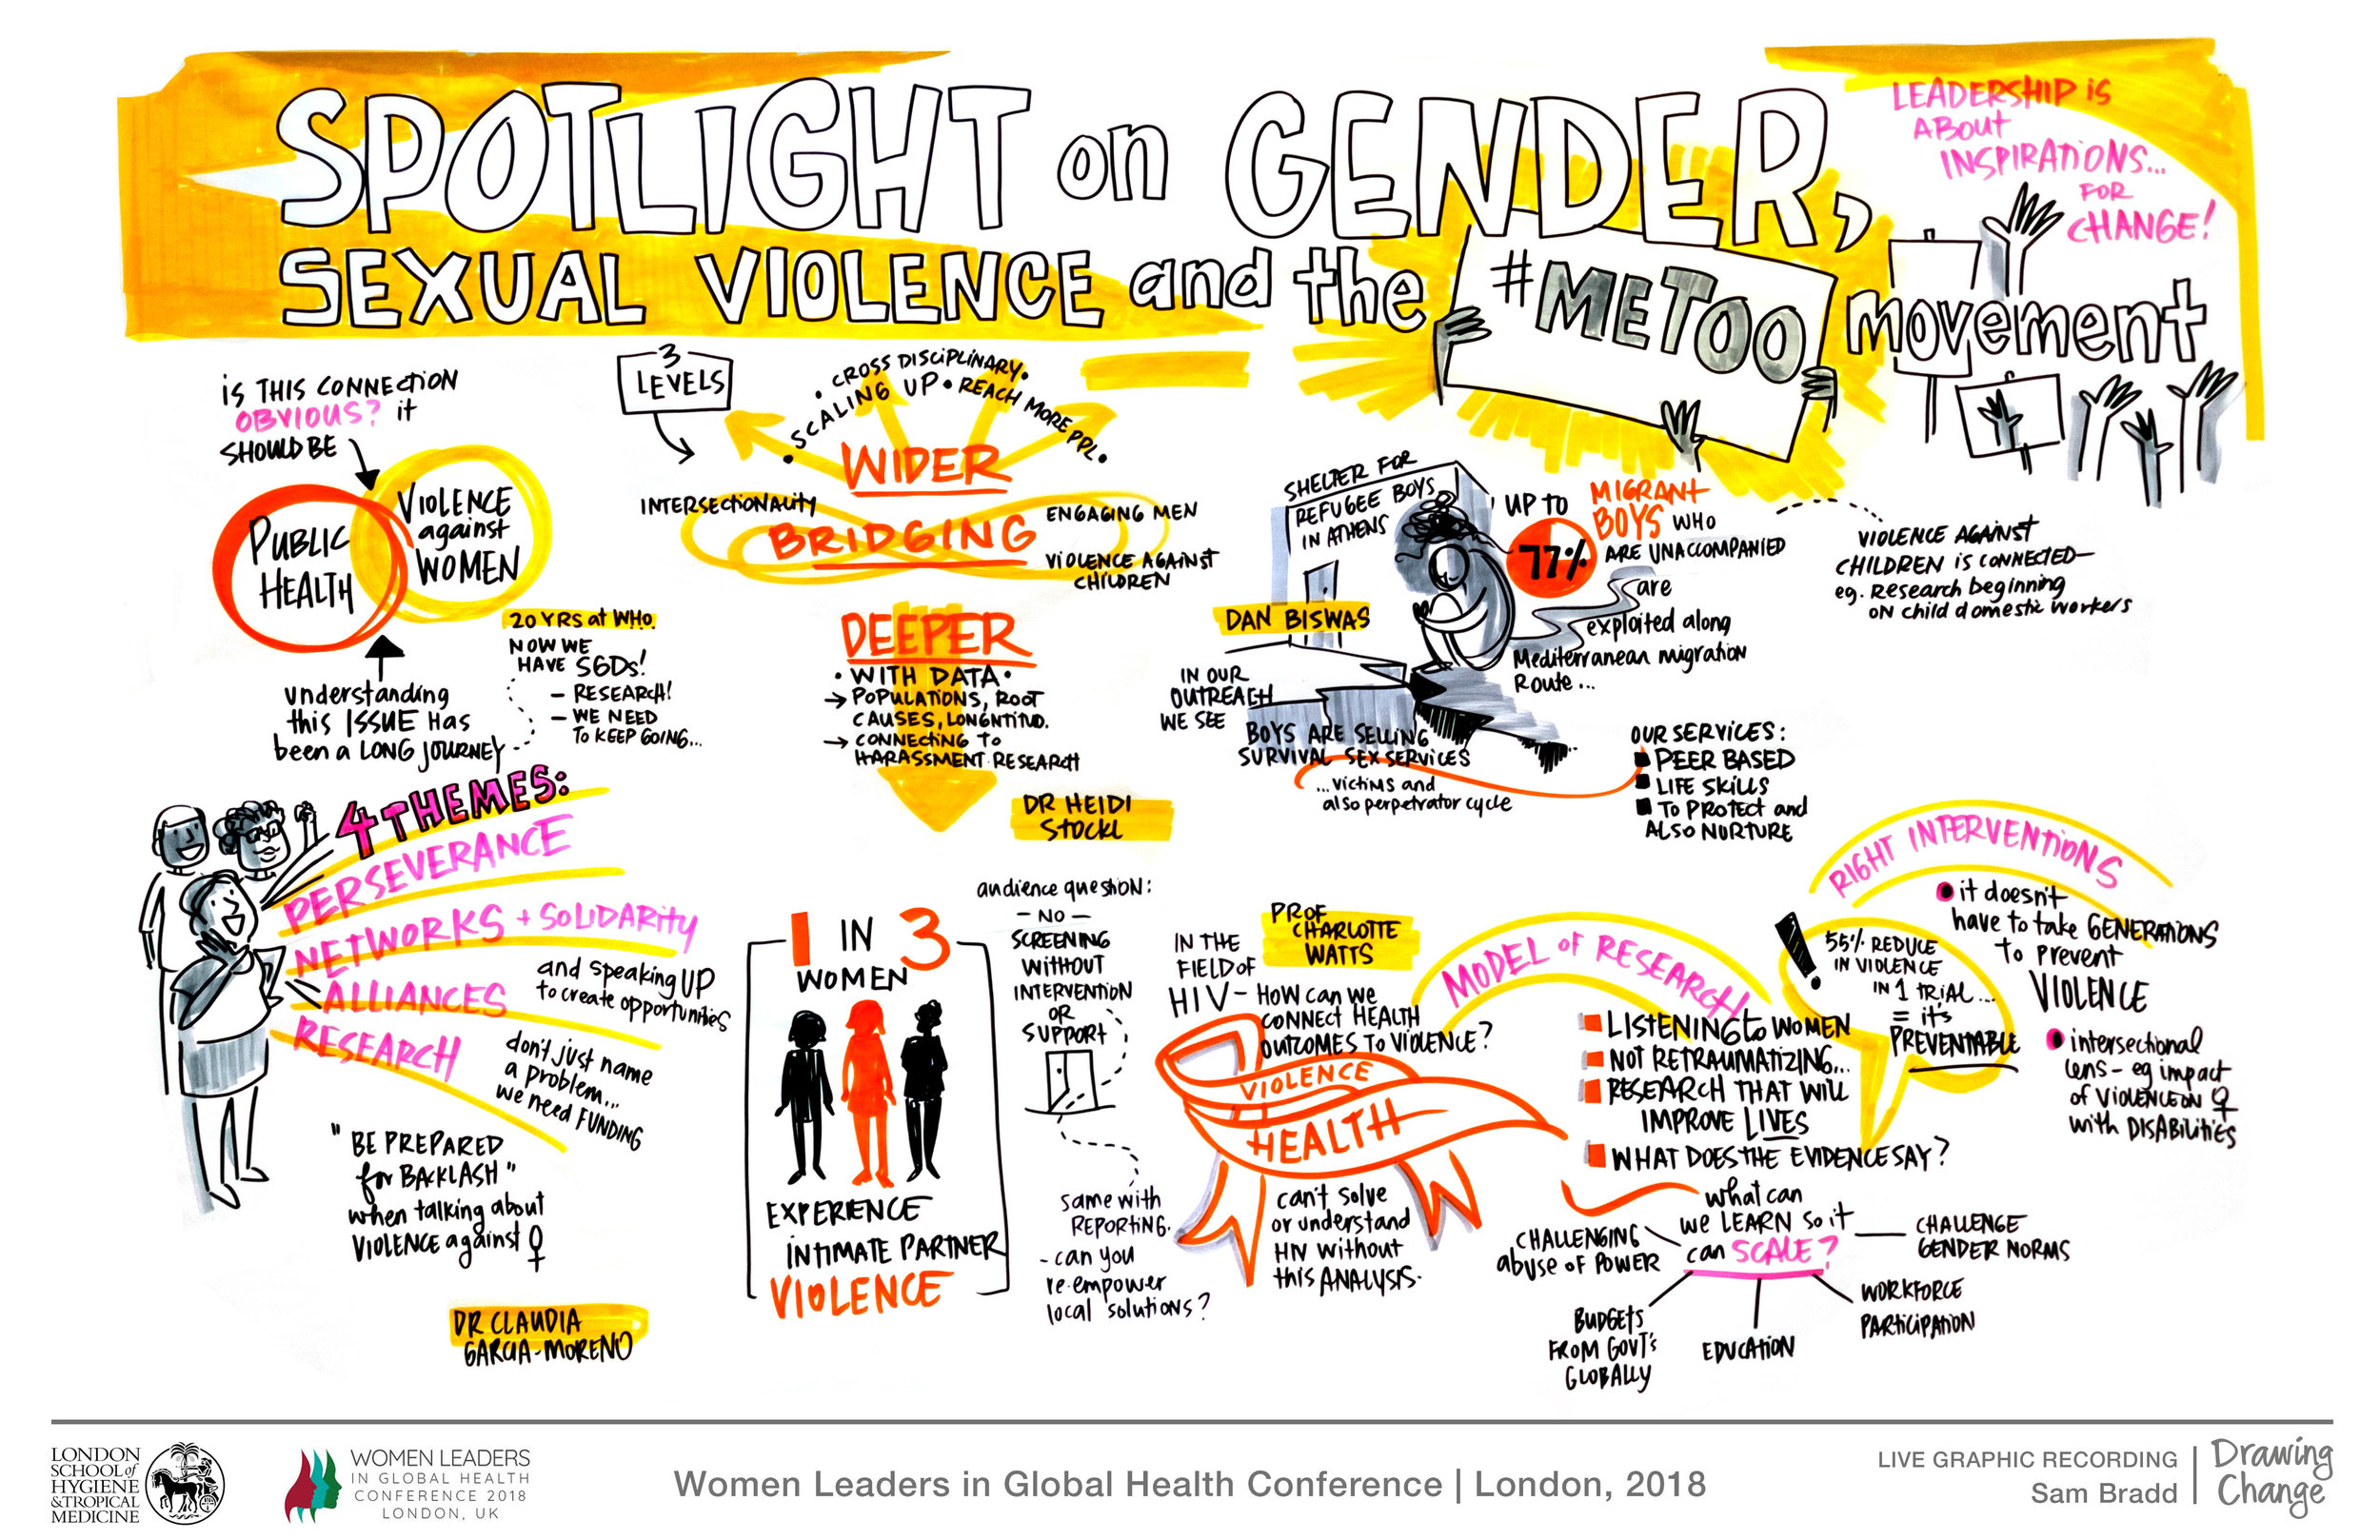 LSHTM_SpotlightonGenderandMeToo_WEB.jpg